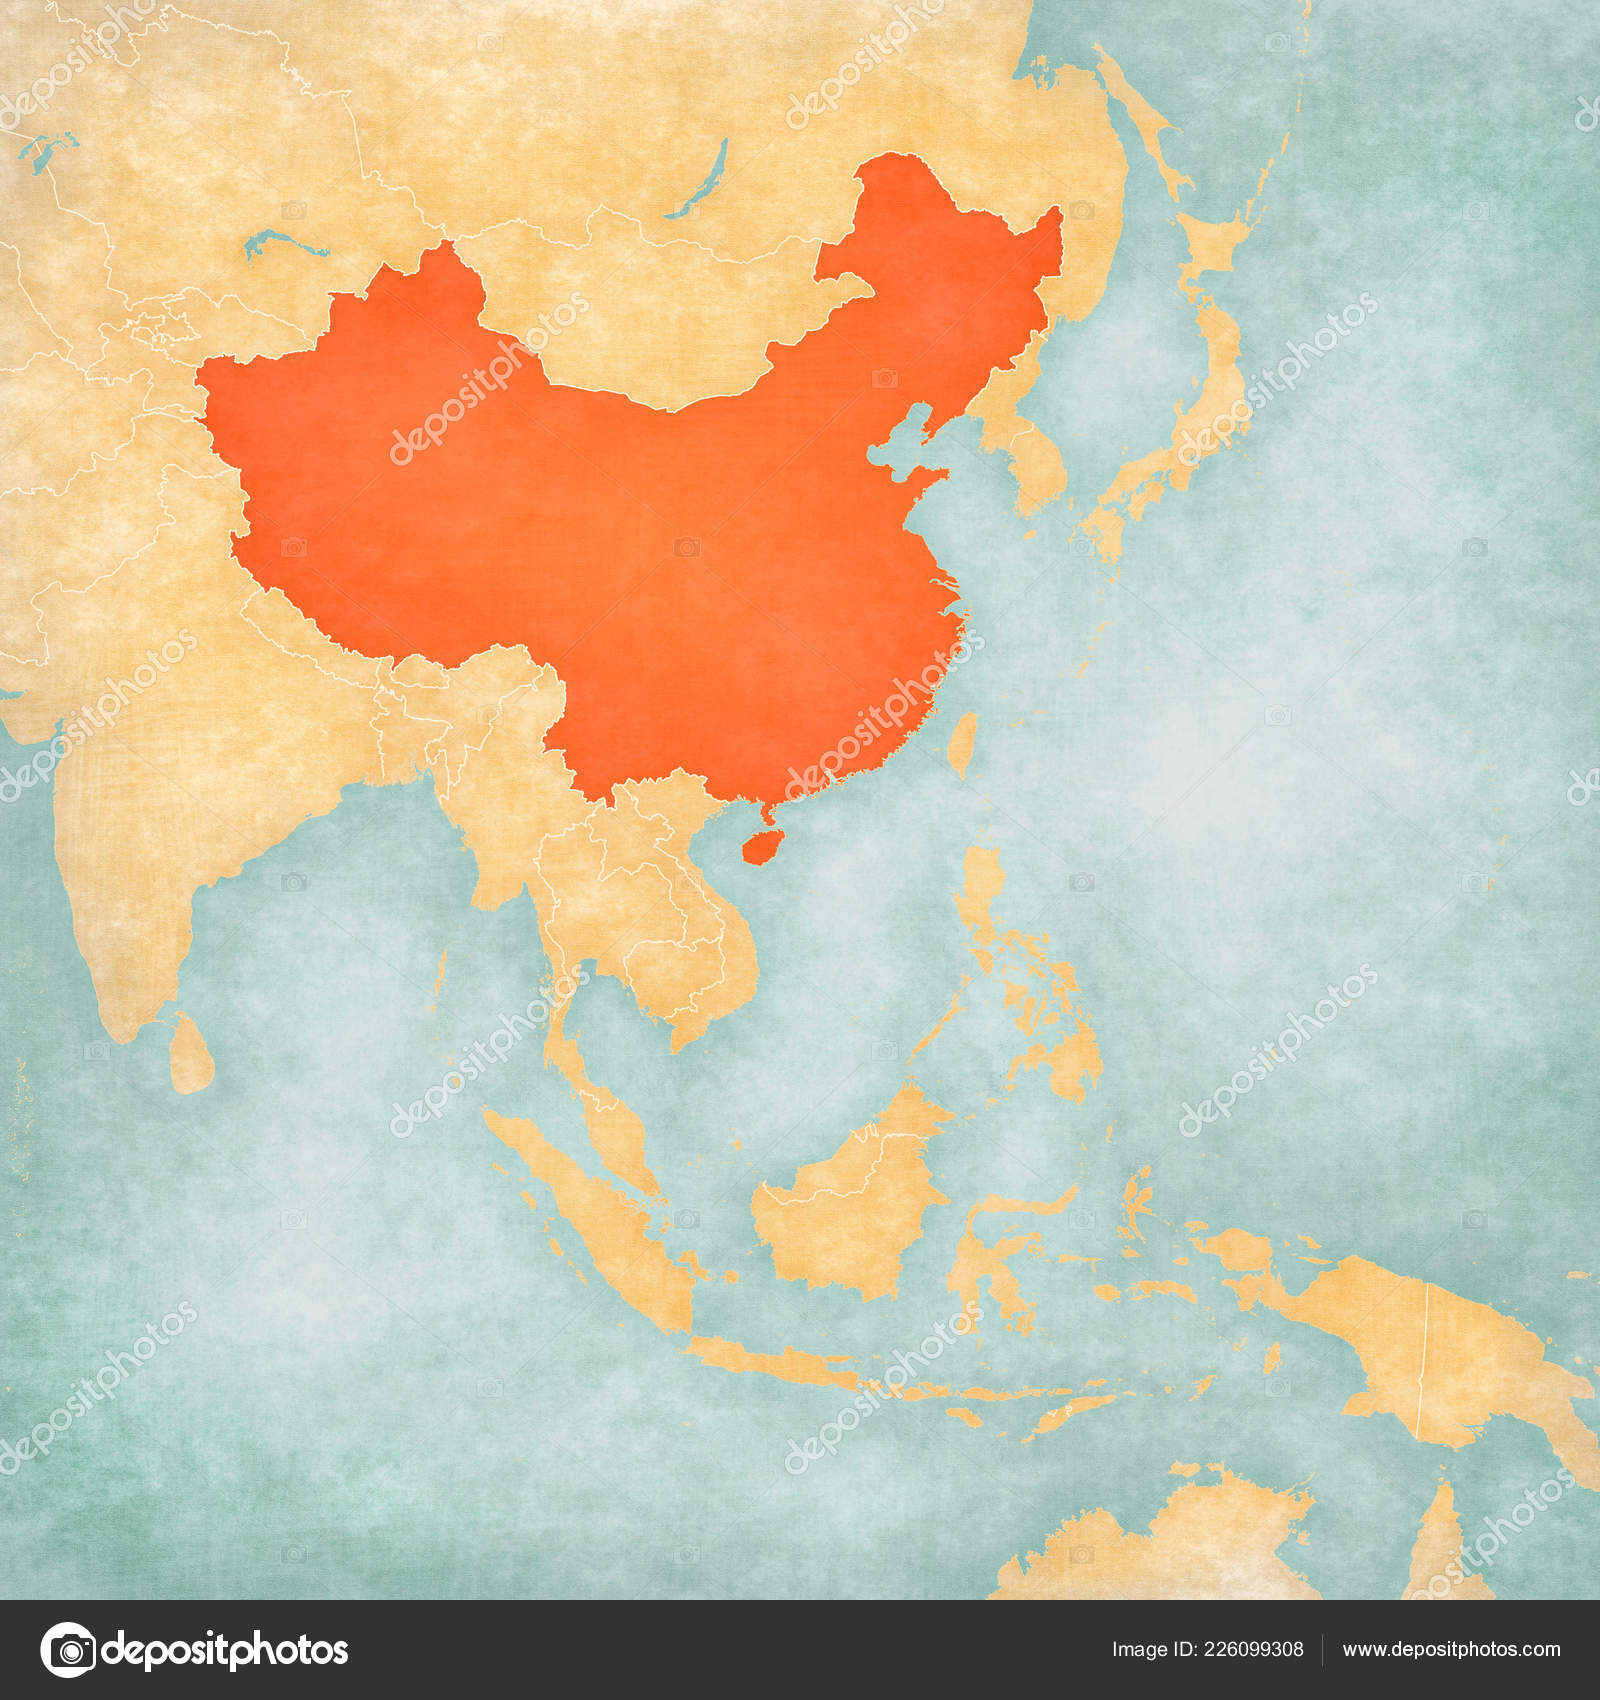 Map Of East And Southeast Asia.China Map East Southeast Asia Soft Grunge Vintage Style Old Stock